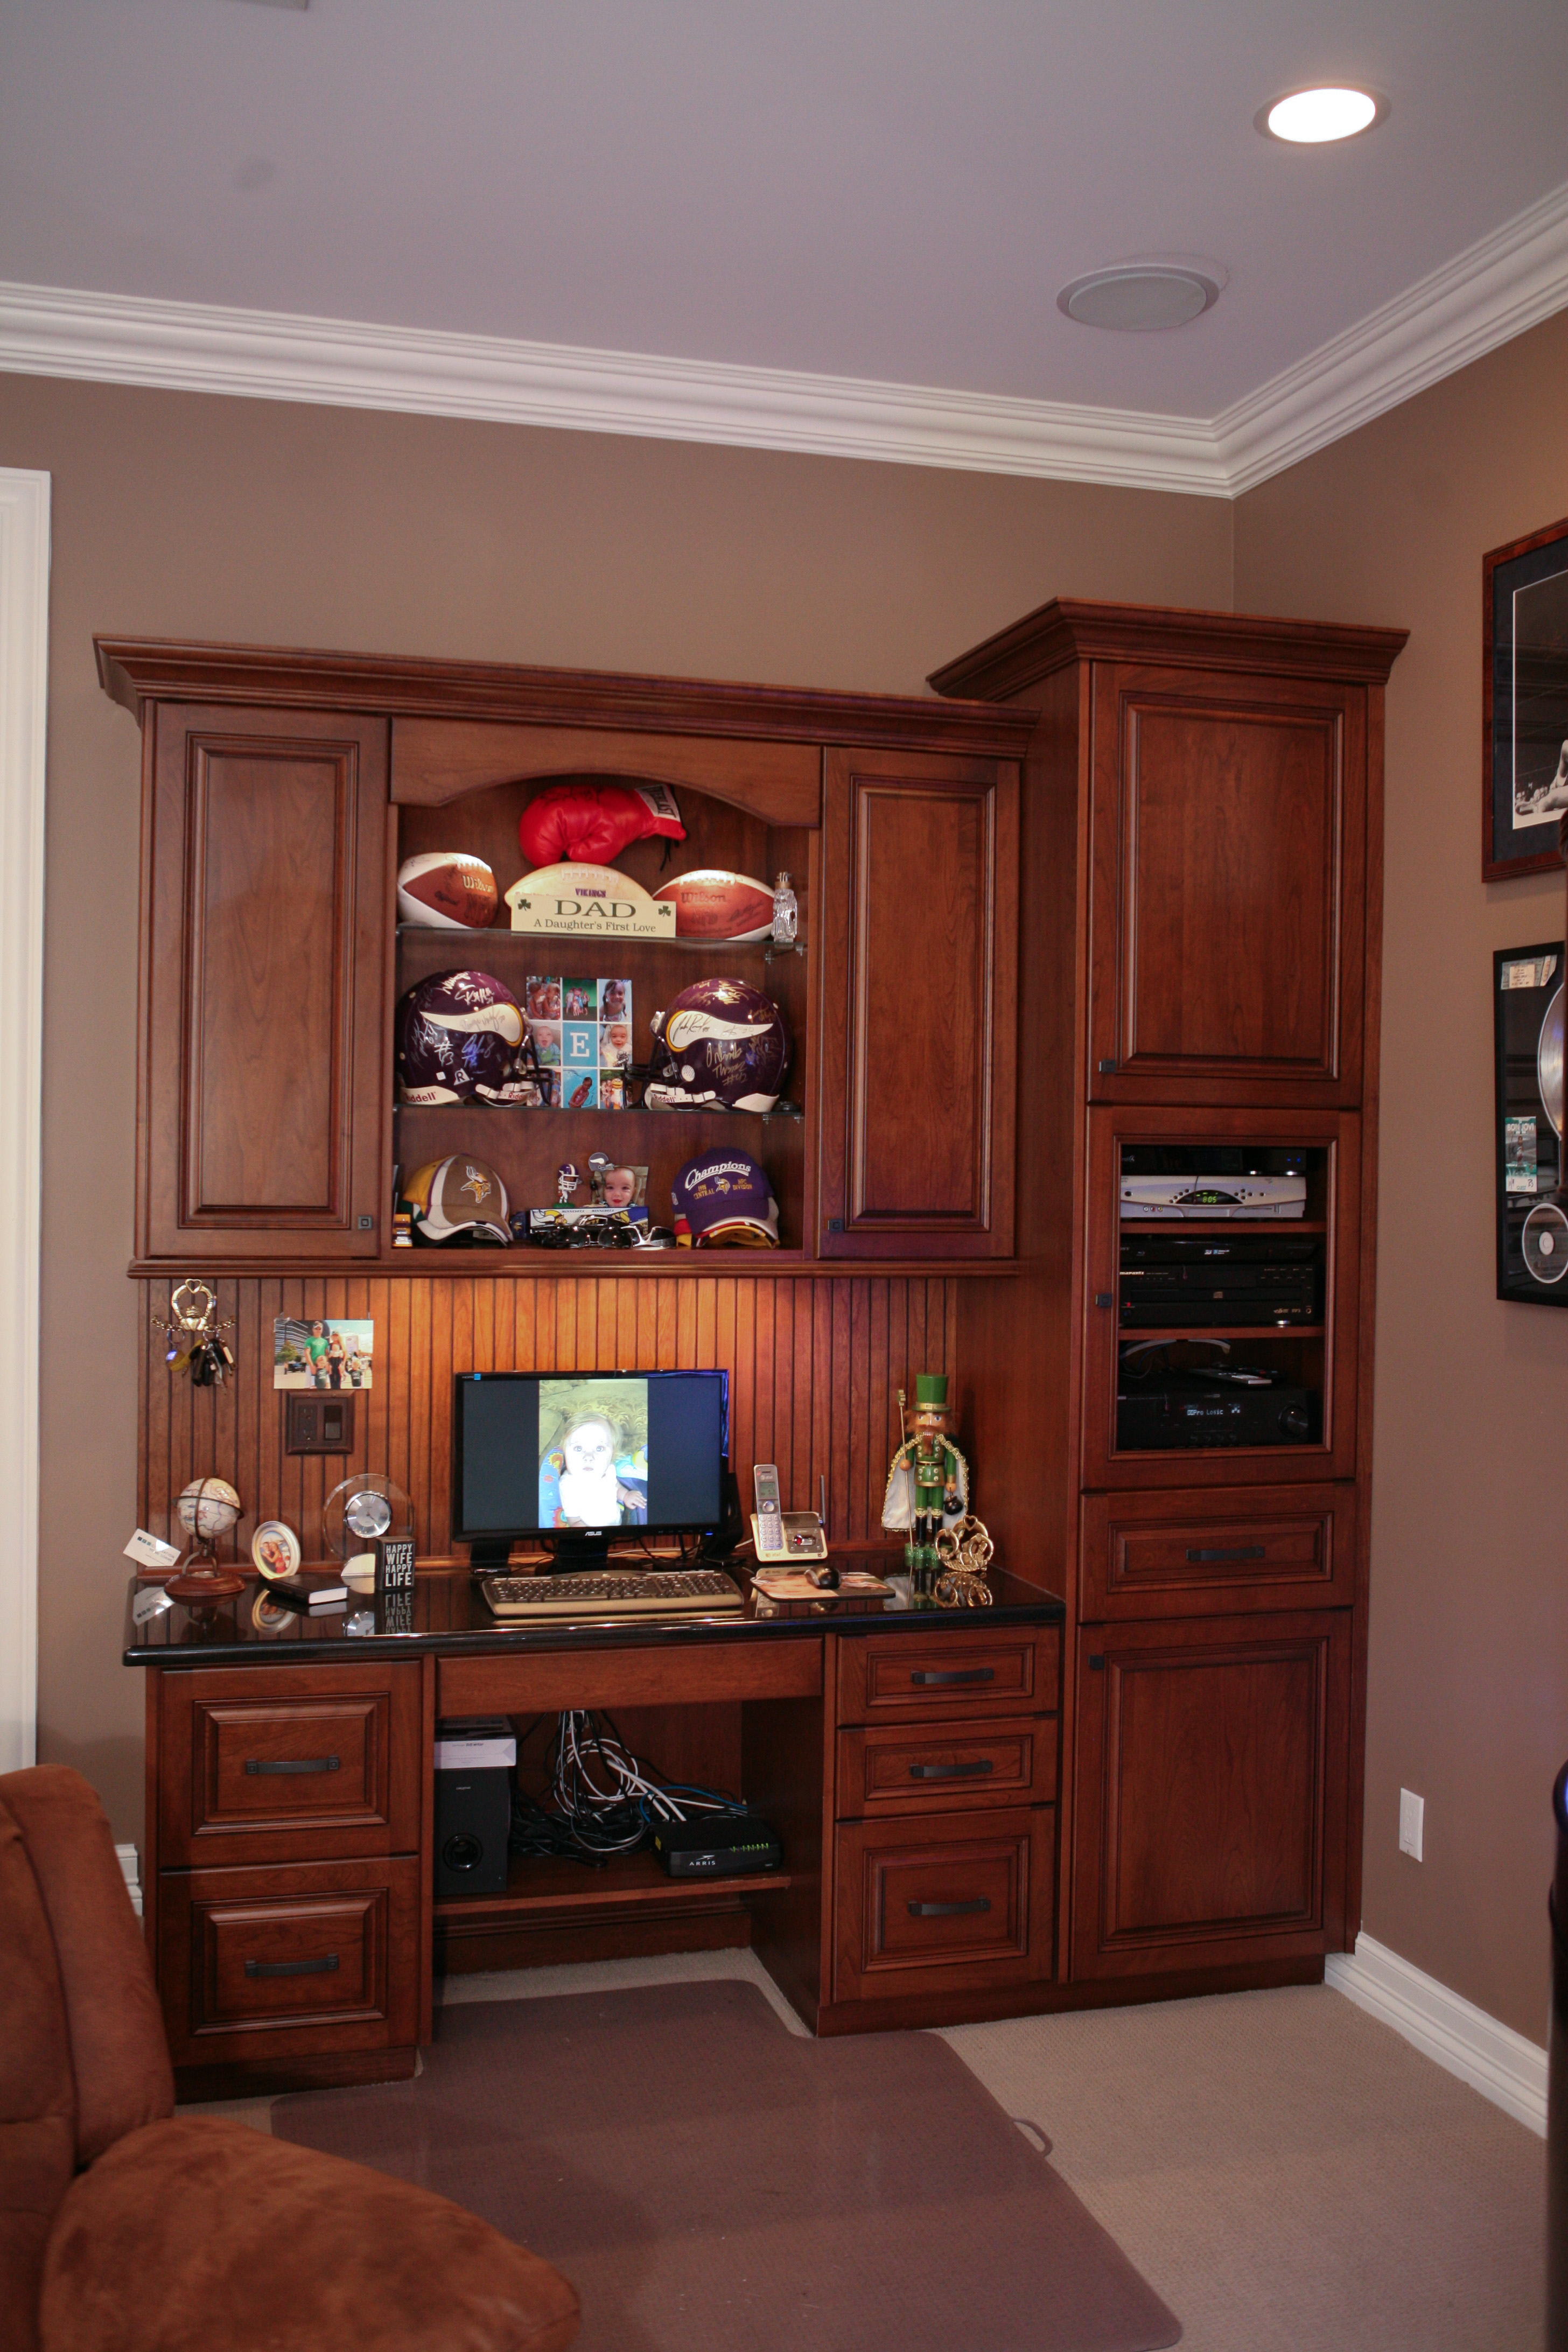 Kitchen Cabinets Wholesale Nj Custom Home Offices Design Line Kitchens In Sea Girt Nj